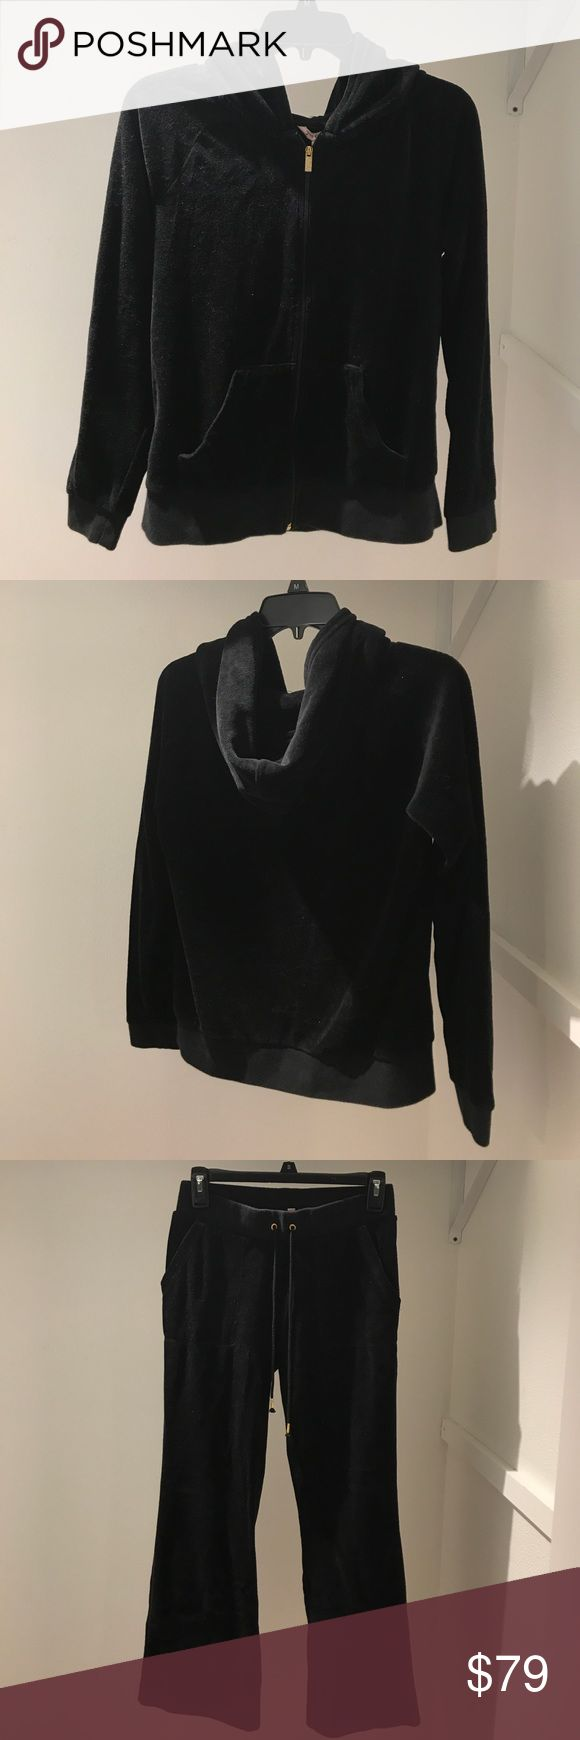 Black Juicy Couture Velour Tracksuit Brand new w/ out tags, only worn once, top can fit a sm/ med, bottomed fit a sm/ med. I'm about 5'7 & the pants reach a little past my ankles  ....(The more you buy, the more I lower my prices so bundle & save!!) Juicy Couture Tops Sweatshirts & Hoodies